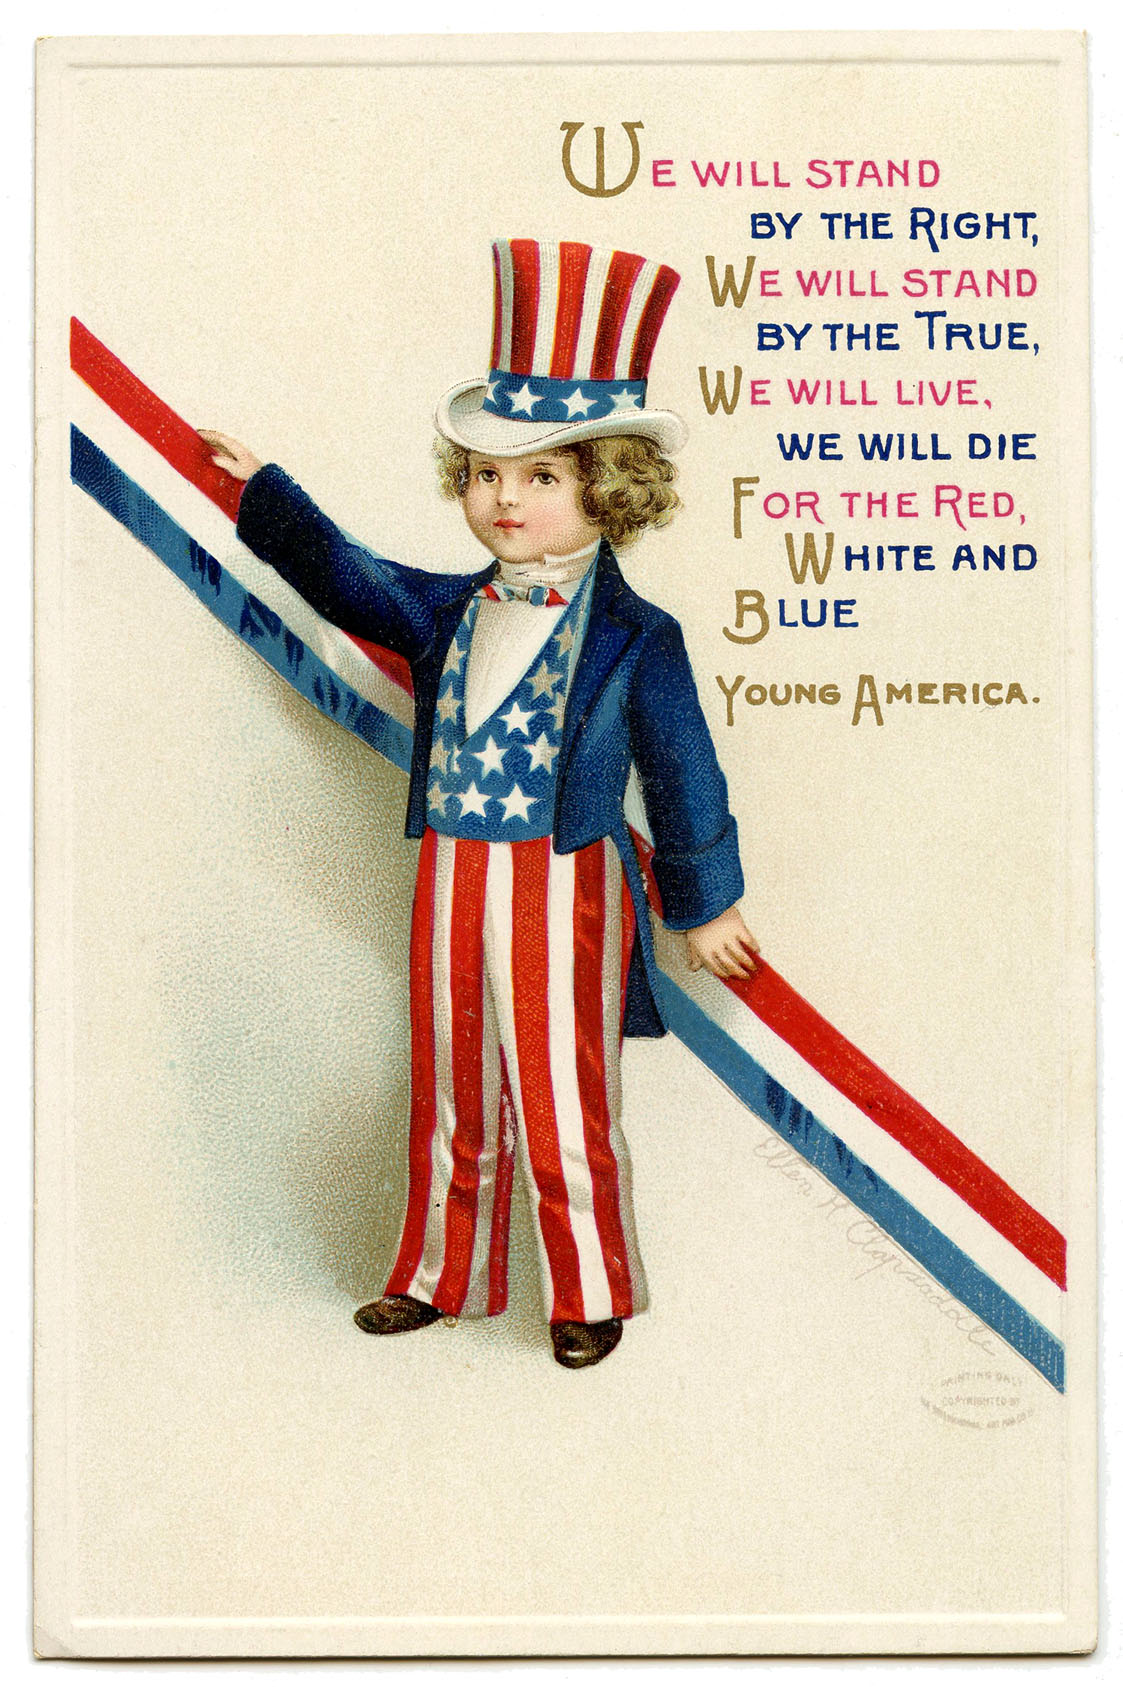 25 Favorite Free Patriotic Images! - The Graphics Fairy